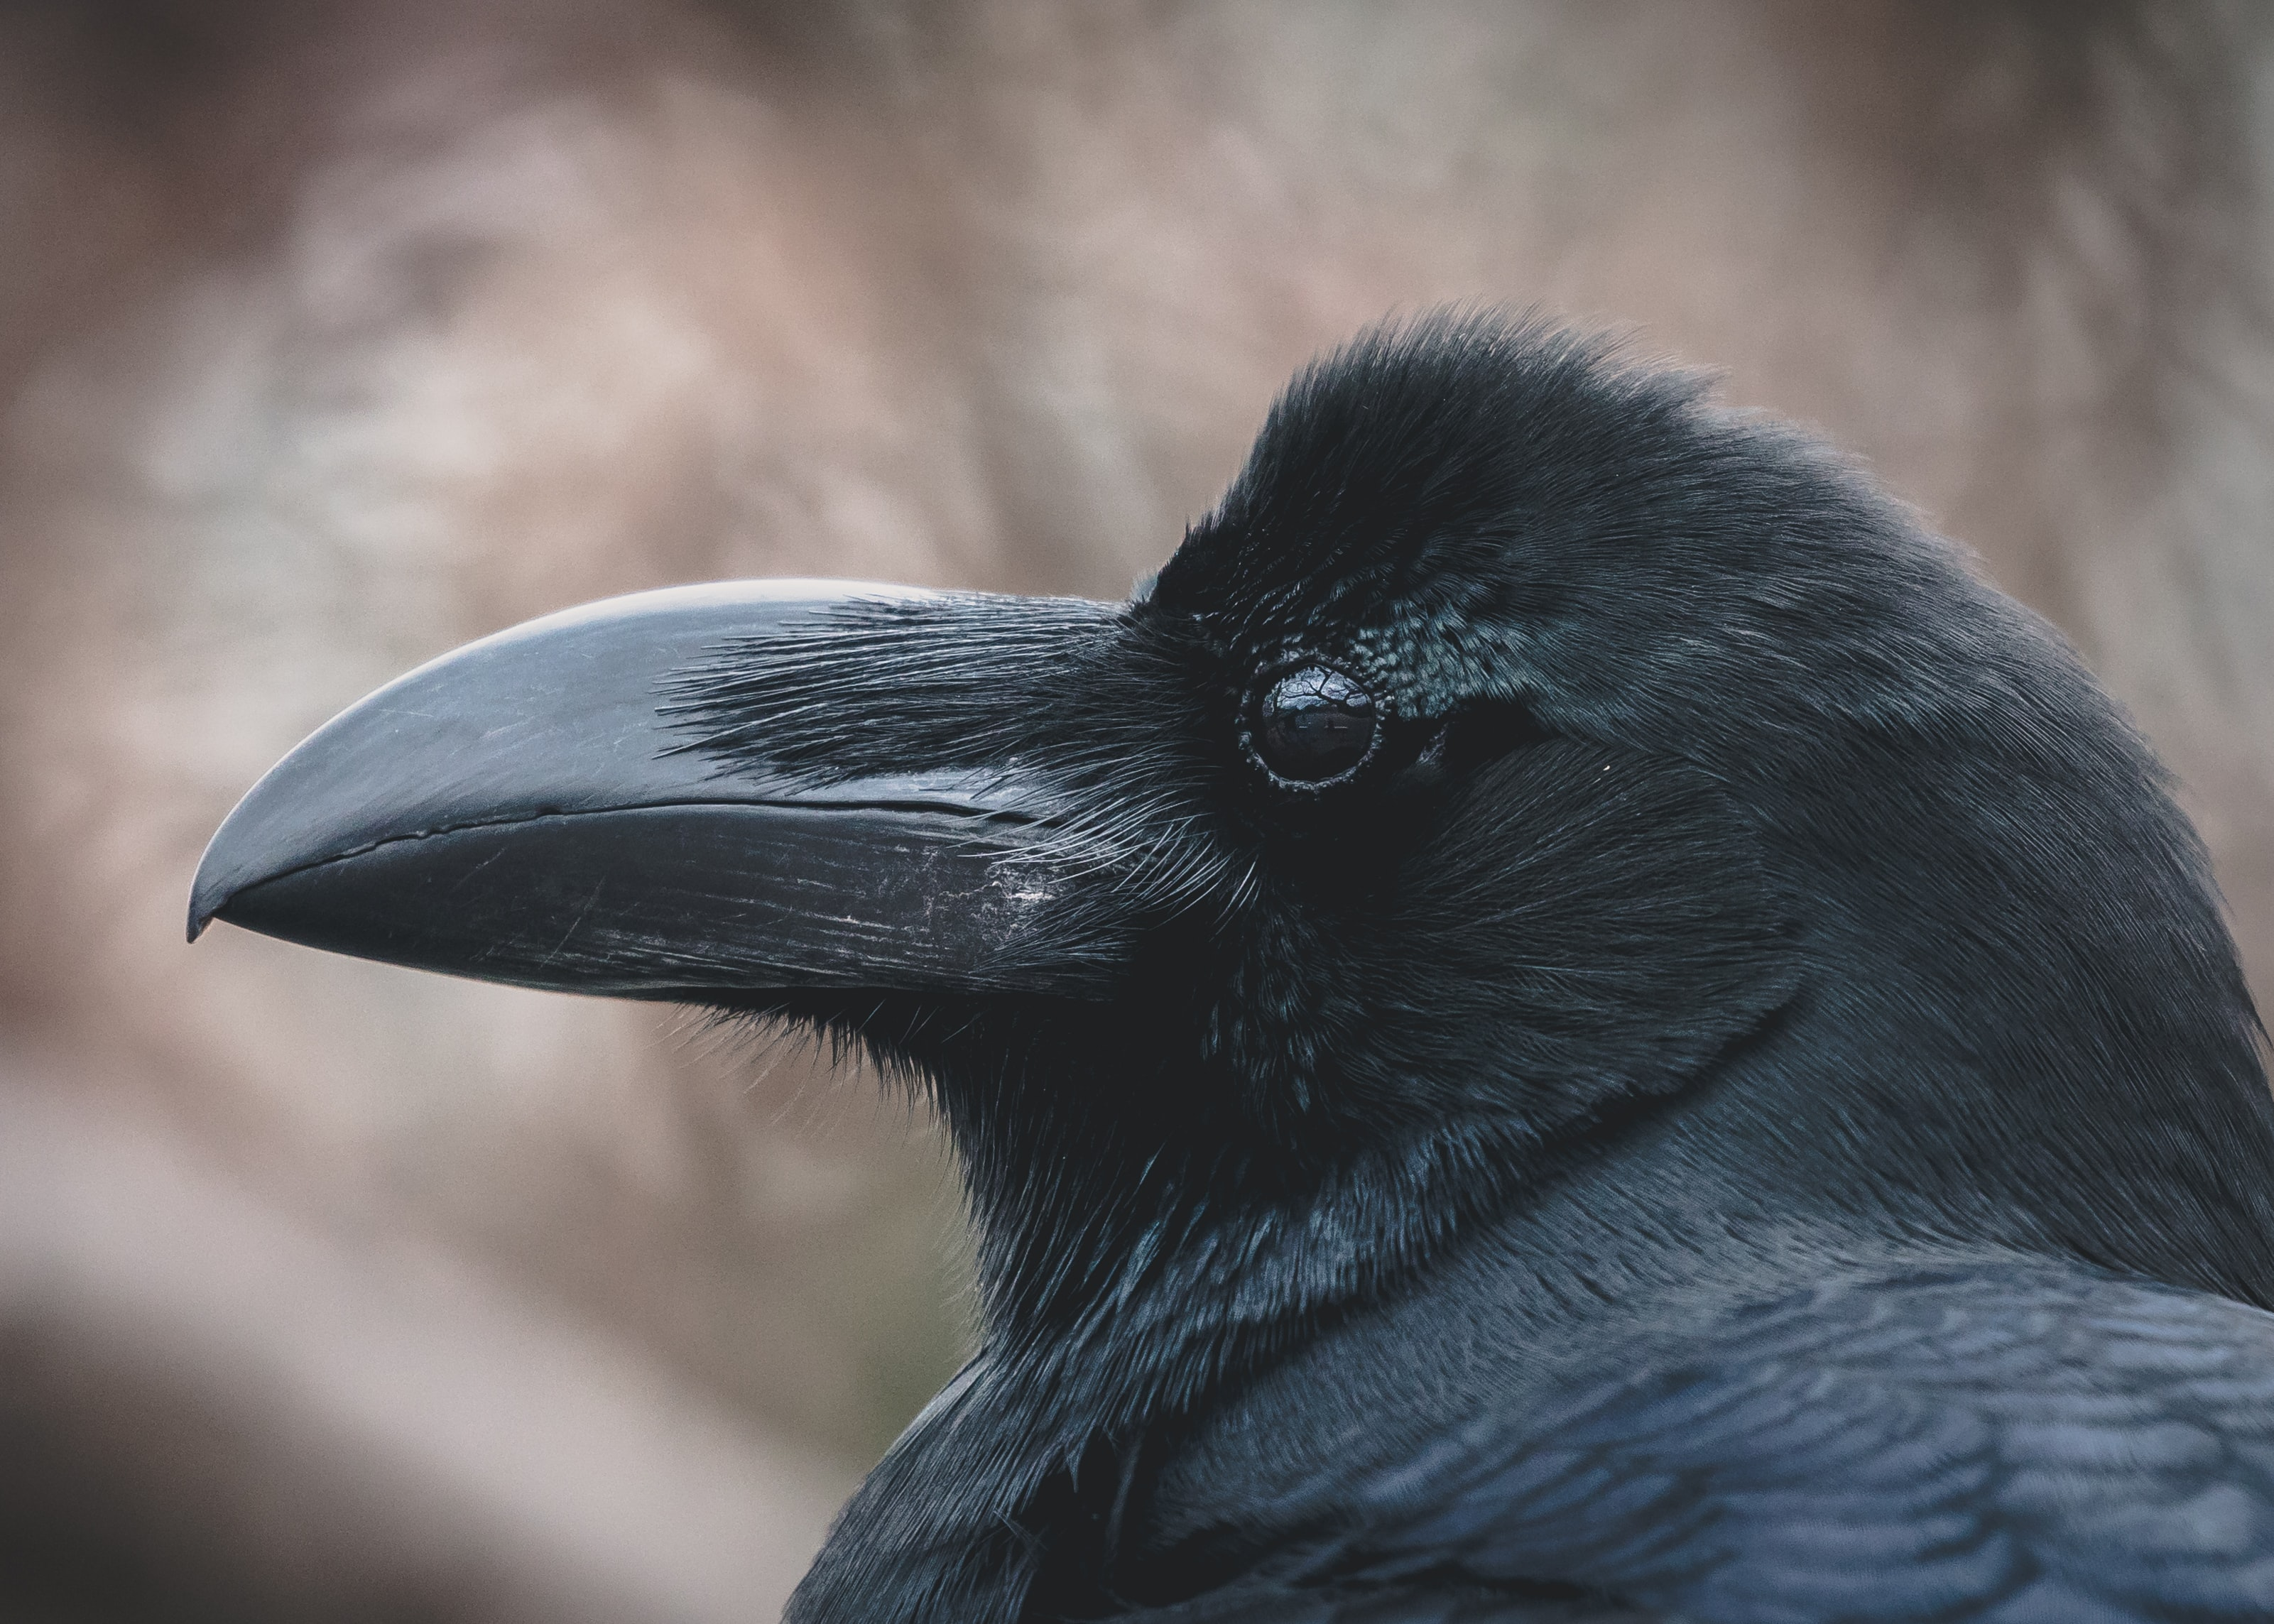 raven face in shallow focus lens